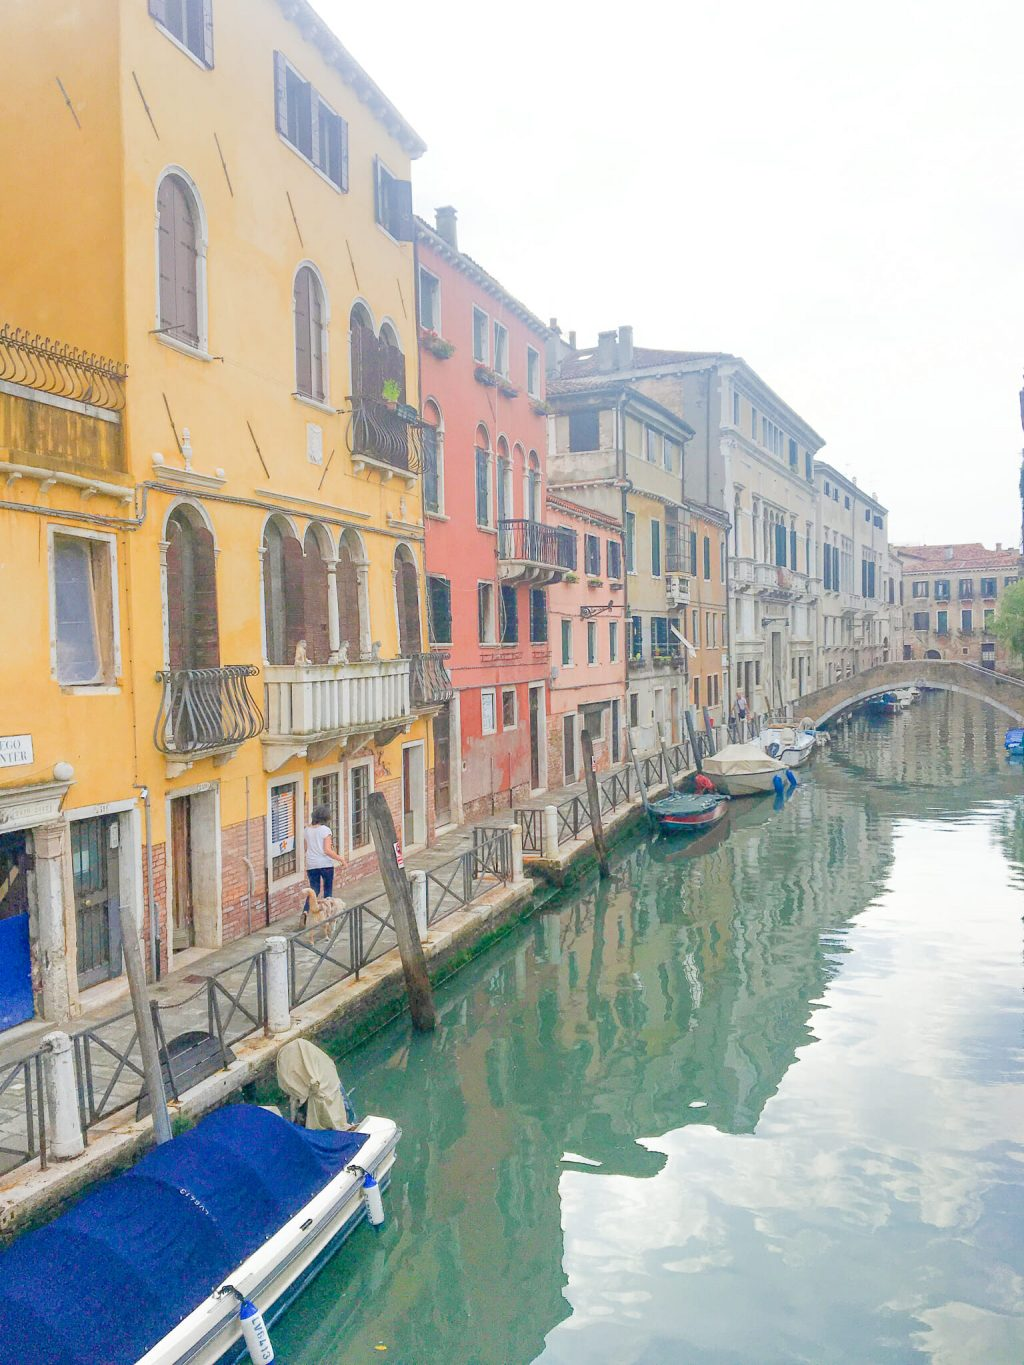 View of the Venetian river streets